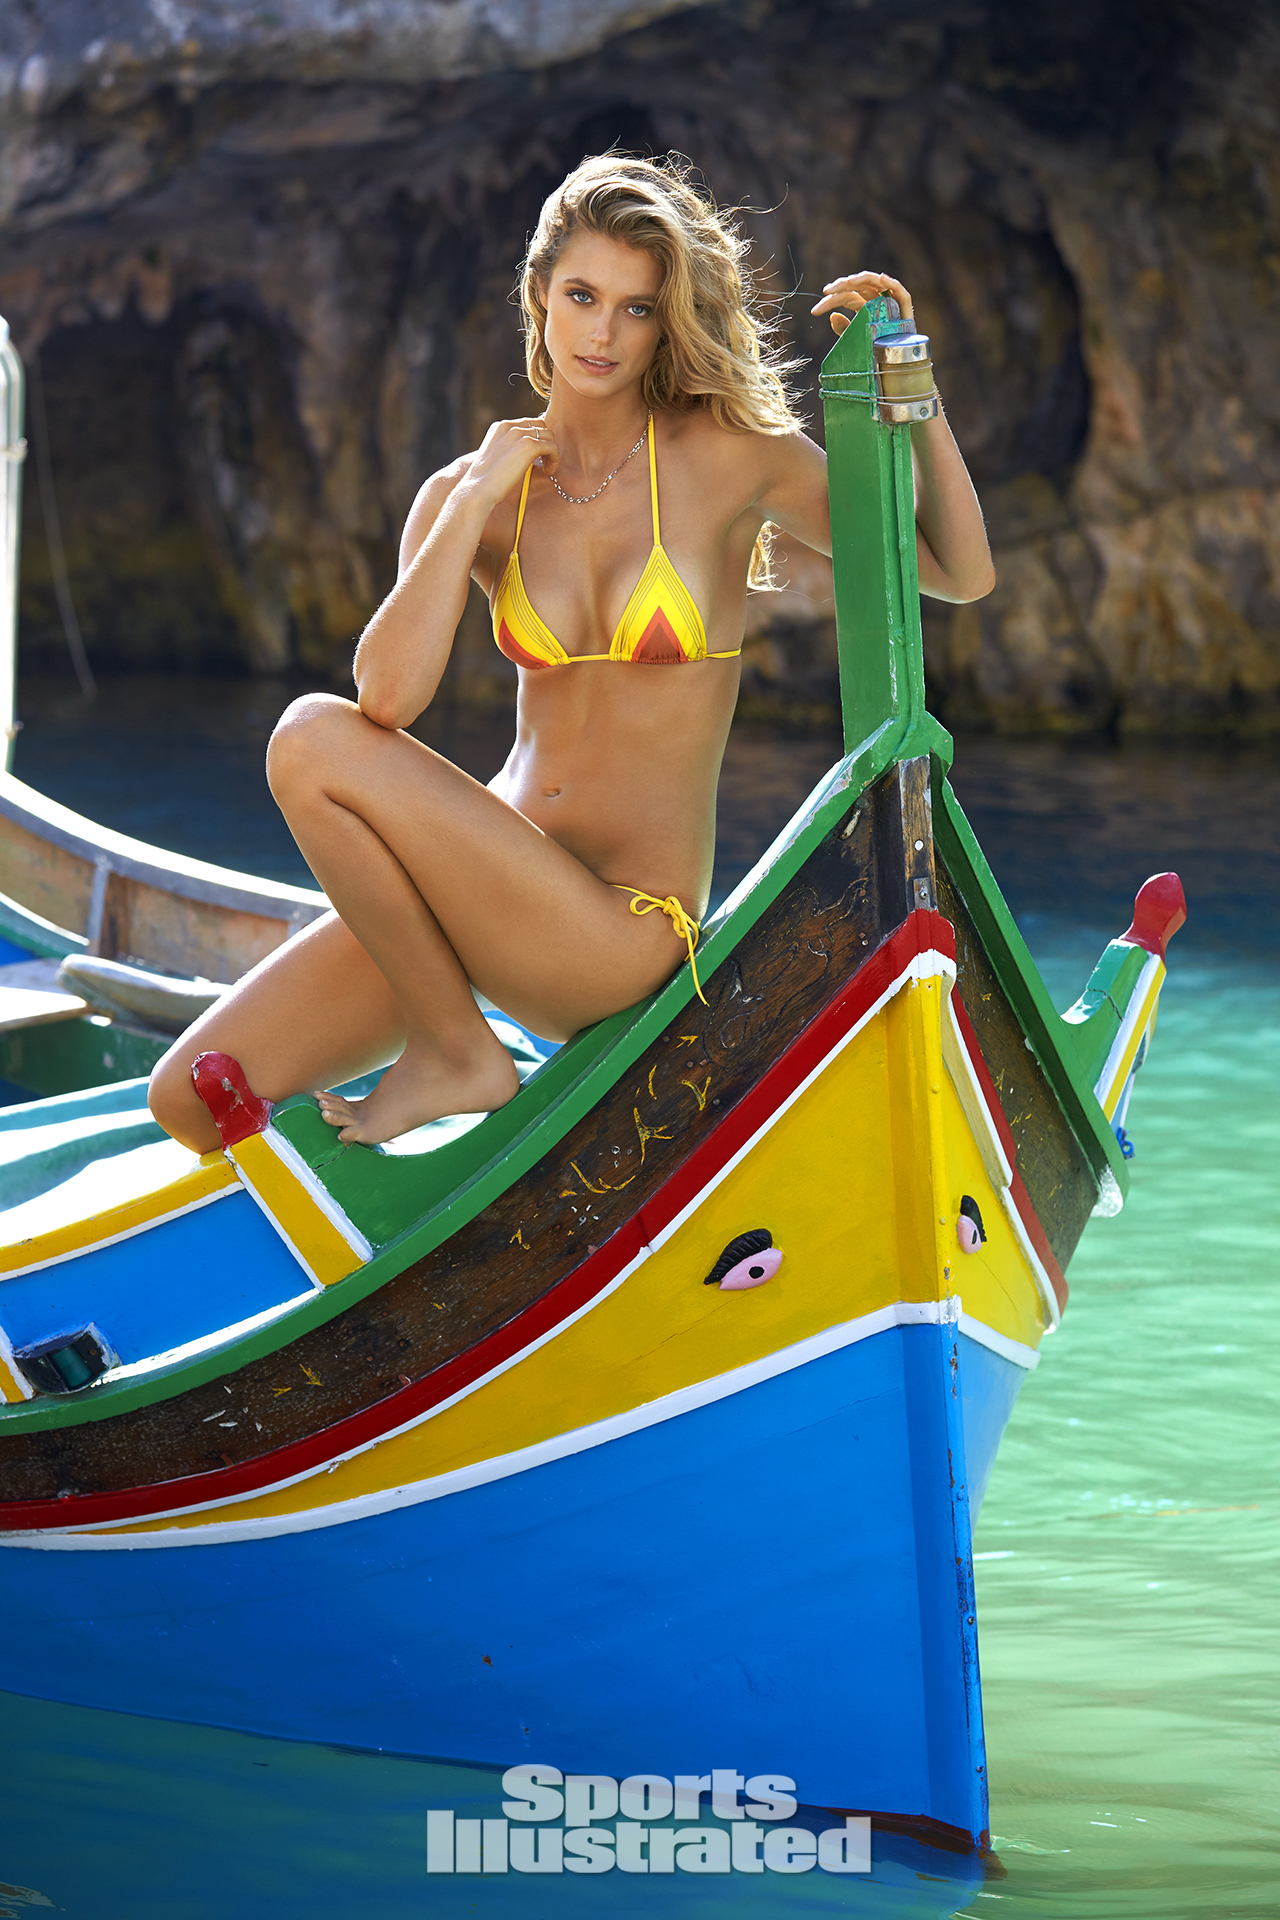 Kate Bock was photographed by Ben Watts in Malta. Swimsuit by Charlie by Matthew Zink.